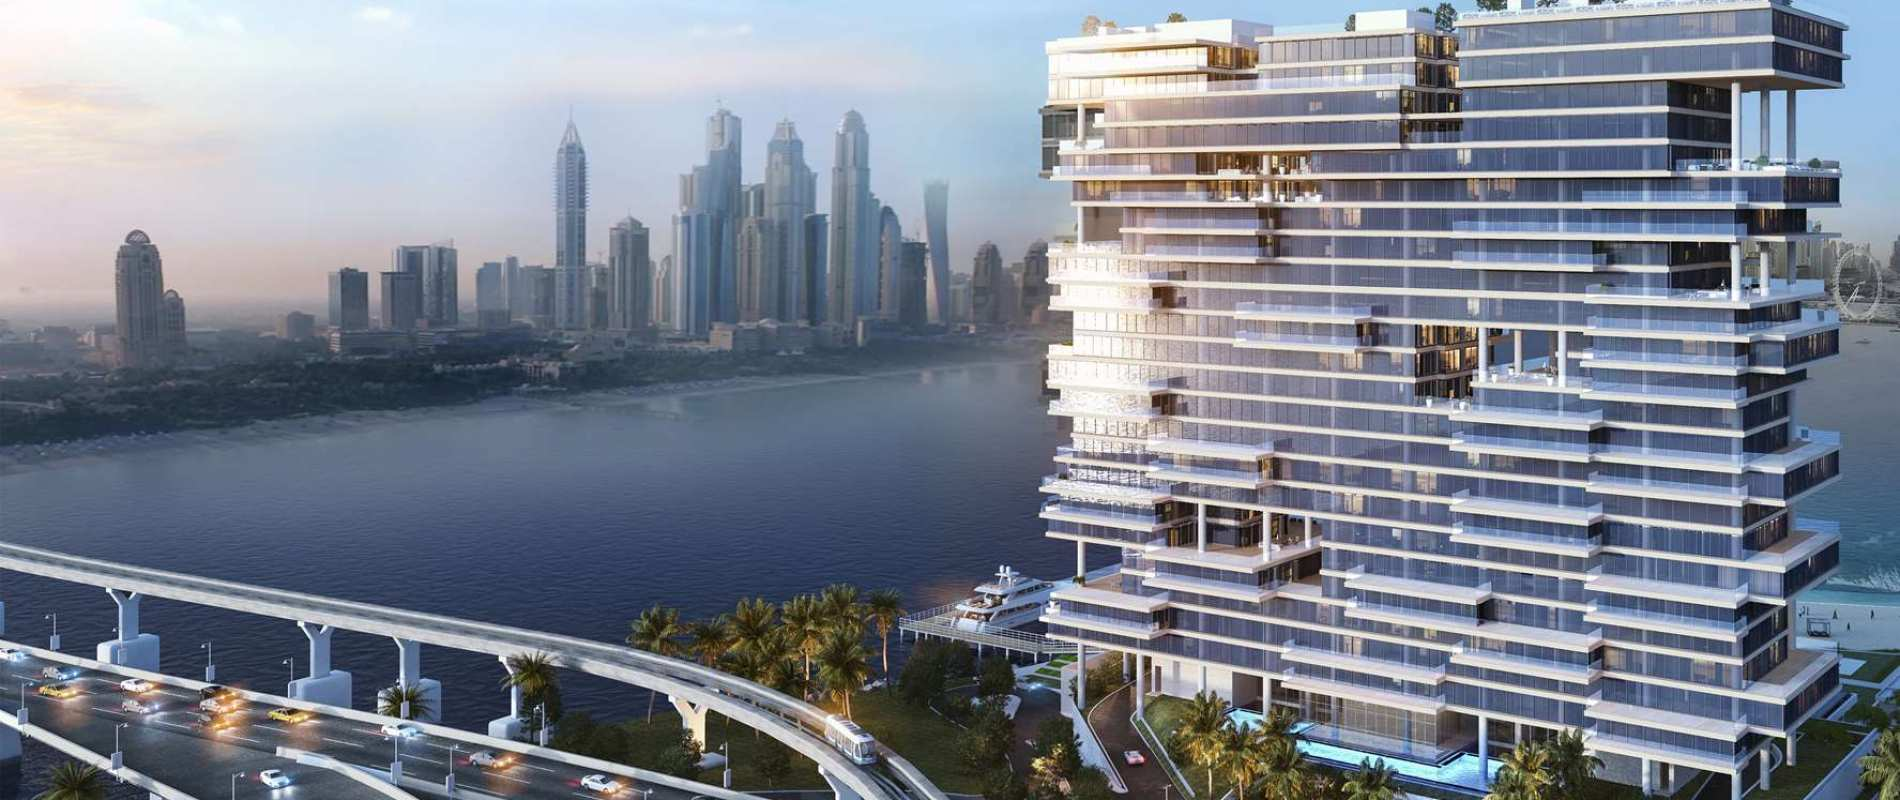 Luxury Property Dubai  - Property for sale in One Palm  Palm Jumeirah